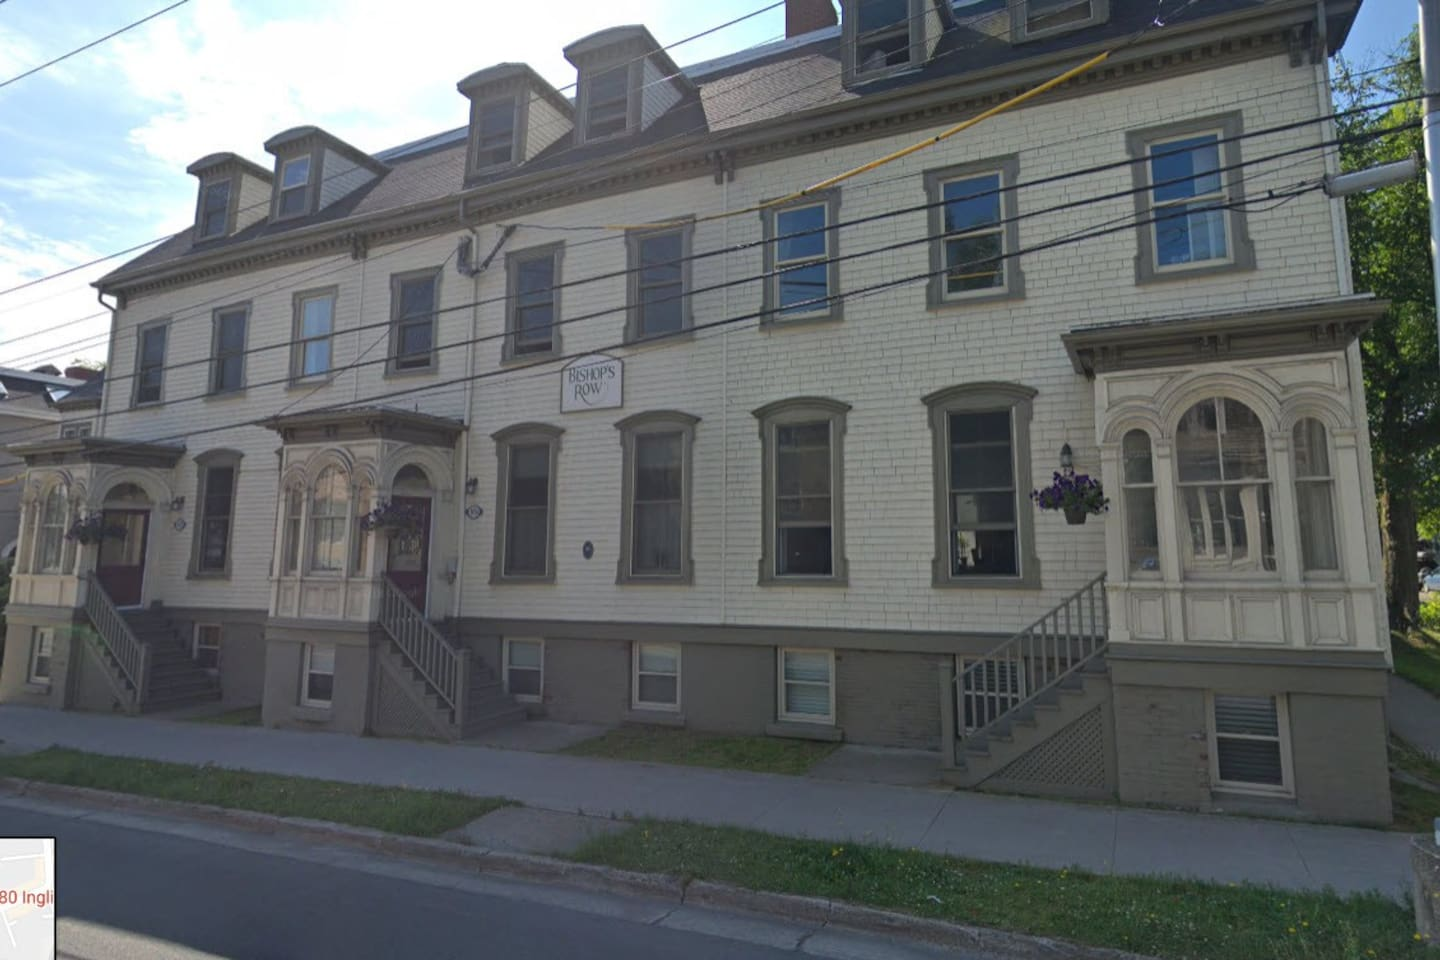 The photo shows the front of the building--an historic landmark!